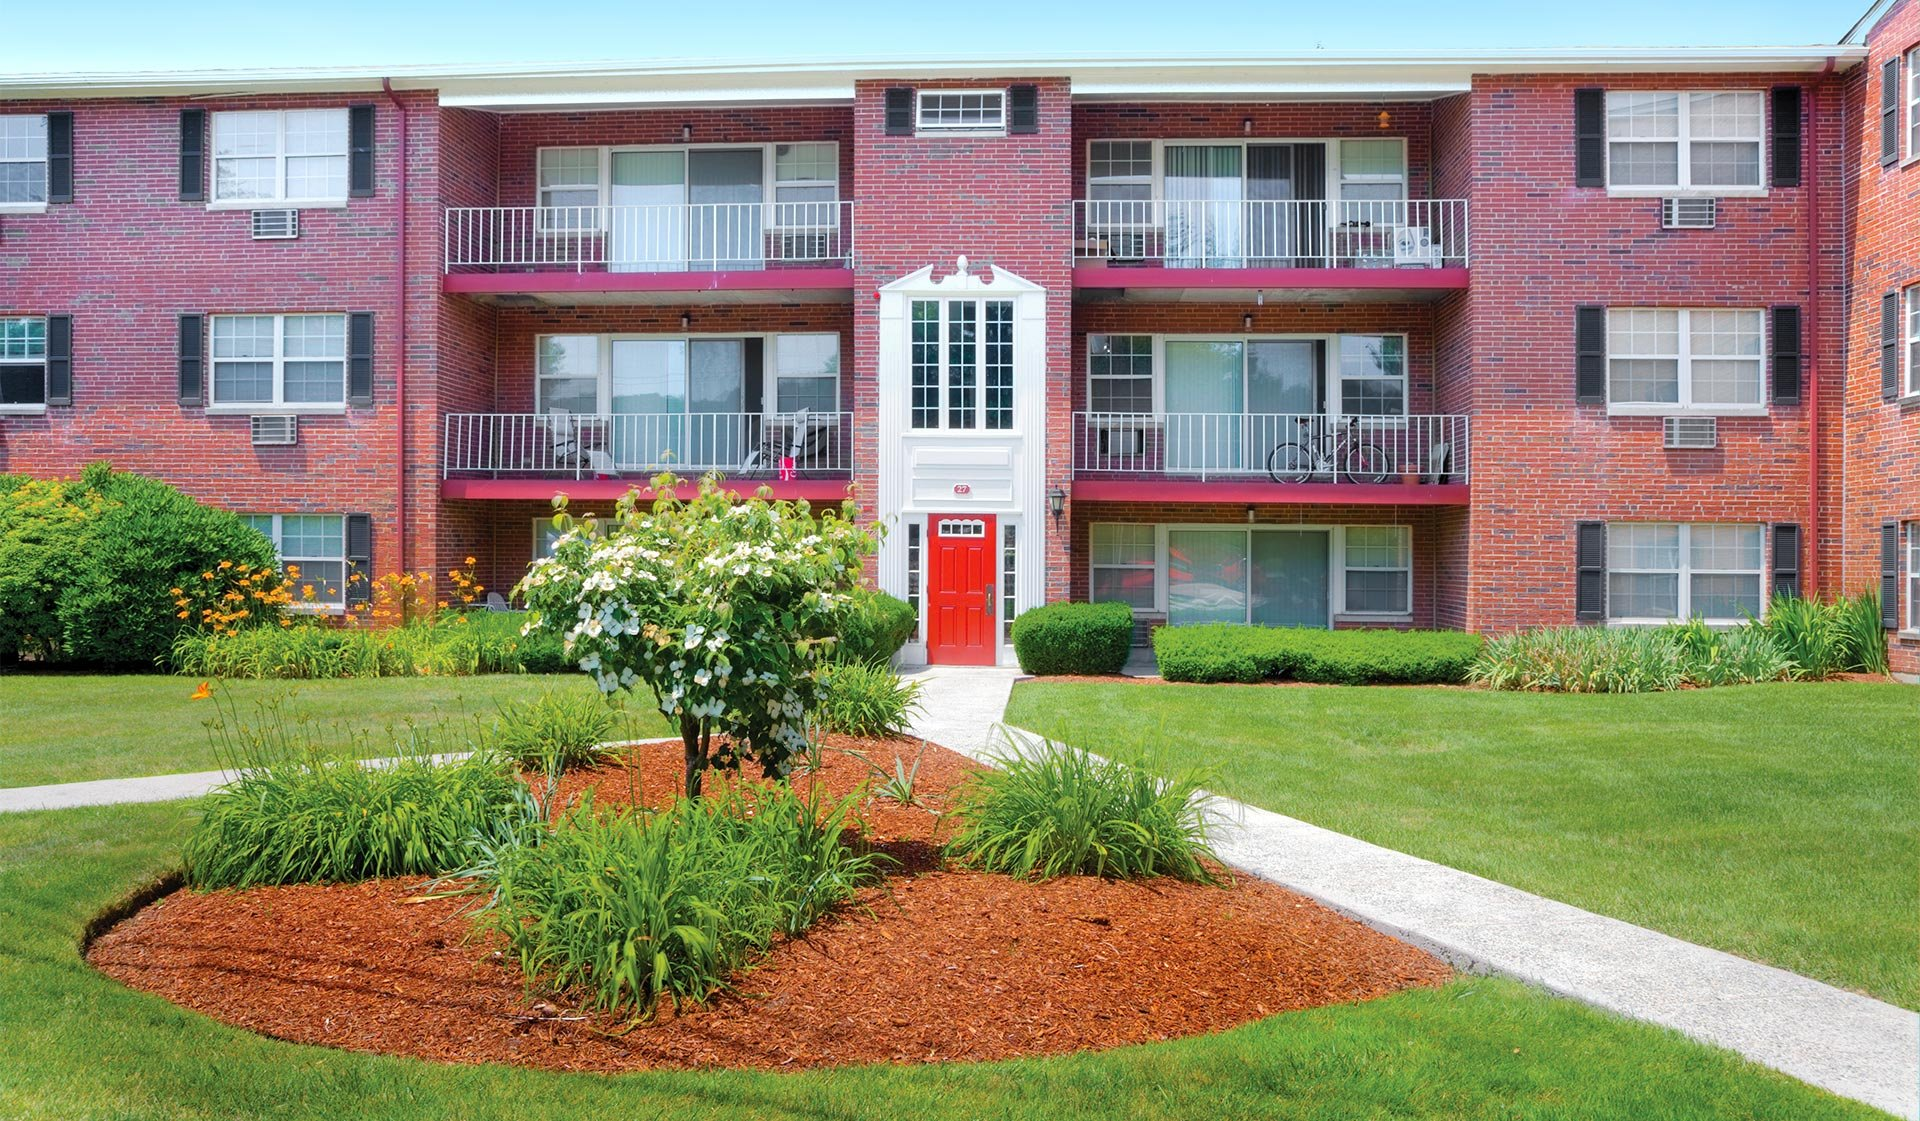 Georgetown Apartment Homes in Framingham, MA - Great Location